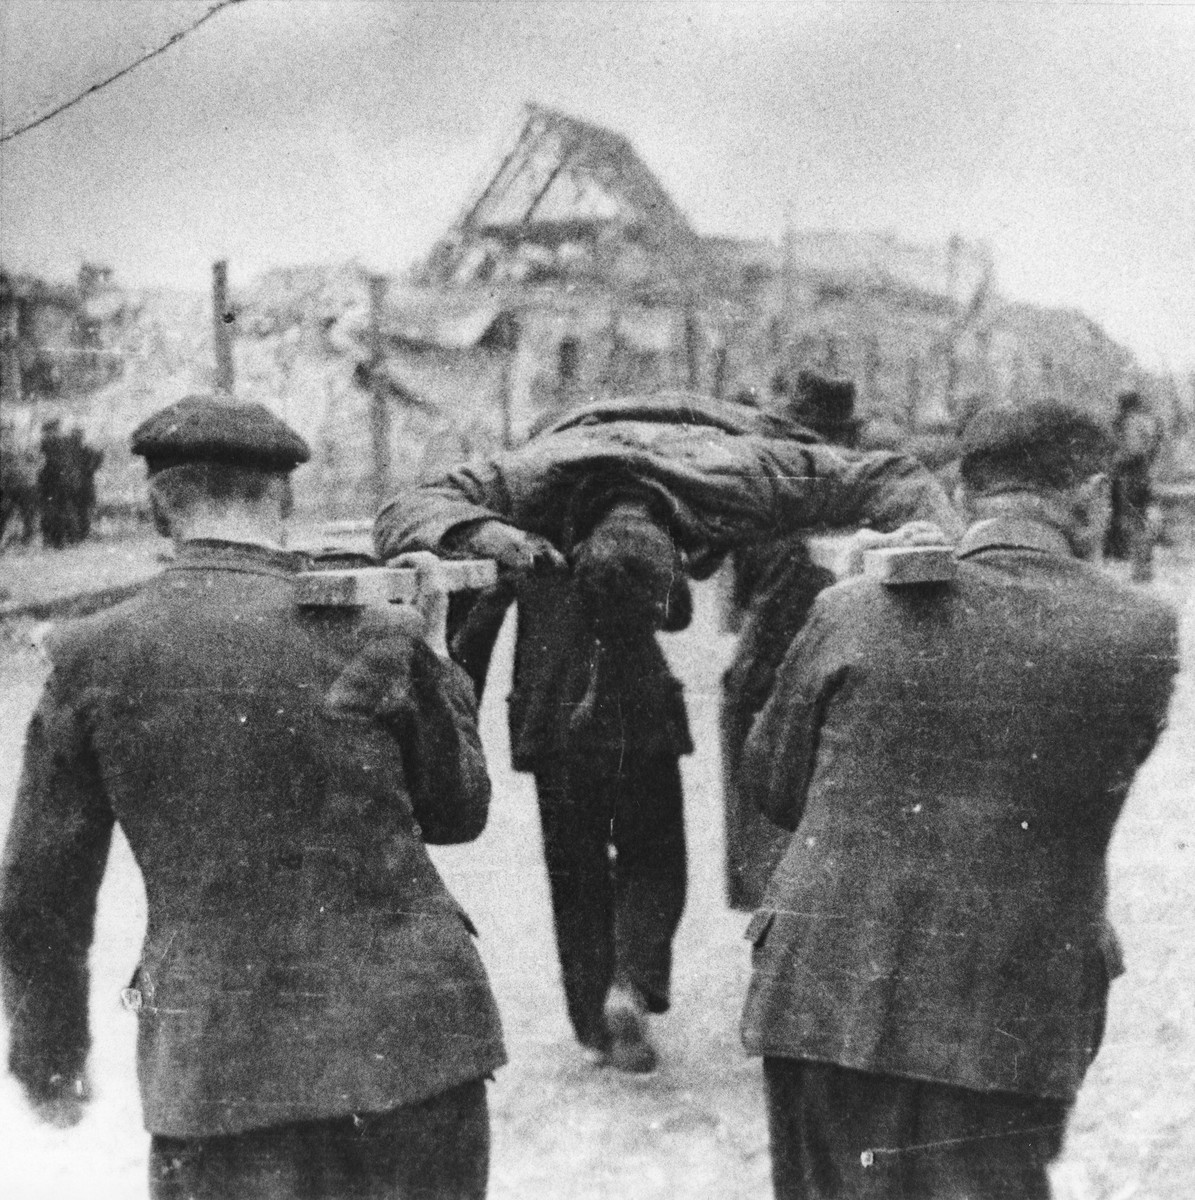 German civilians removing corpses from the Nordhausen concentration camp for burial in mass graves.